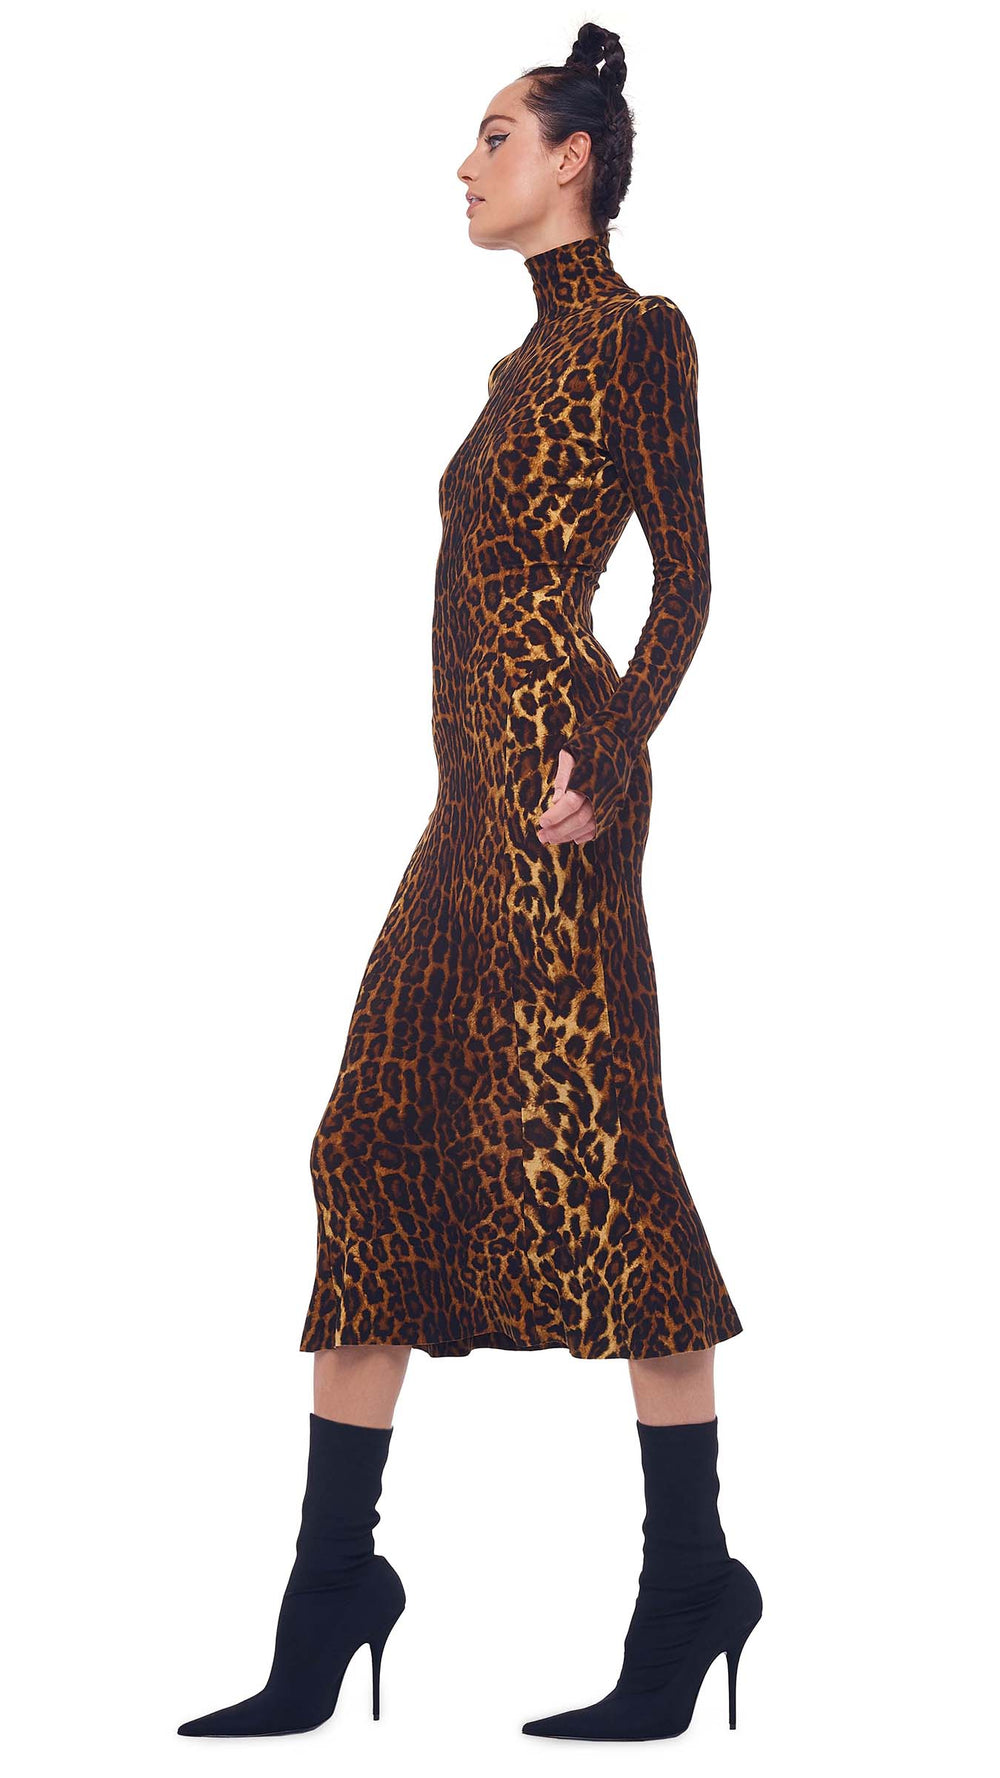 LONG SLEEVE TURTLE FISHTAIL DRESS TO MIDCALF